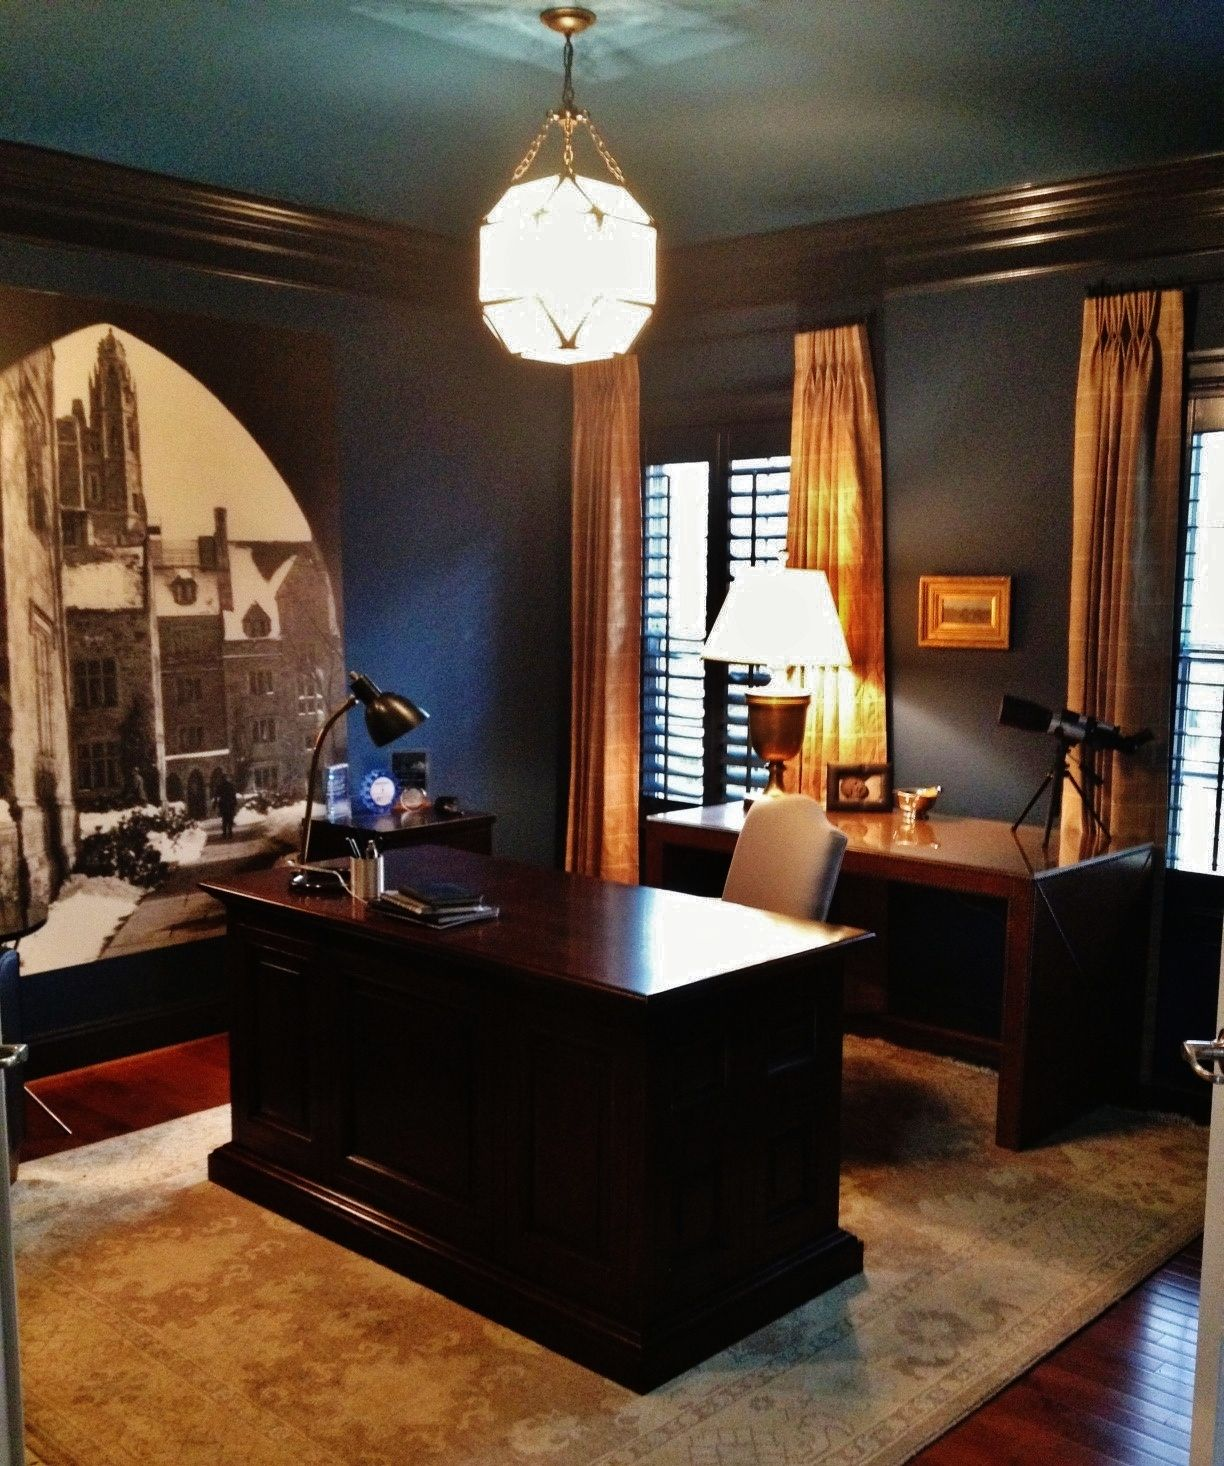 Office Pictures For Walls Golf: Man's Office [ ArtOfGolf.com ] #office #art #golf